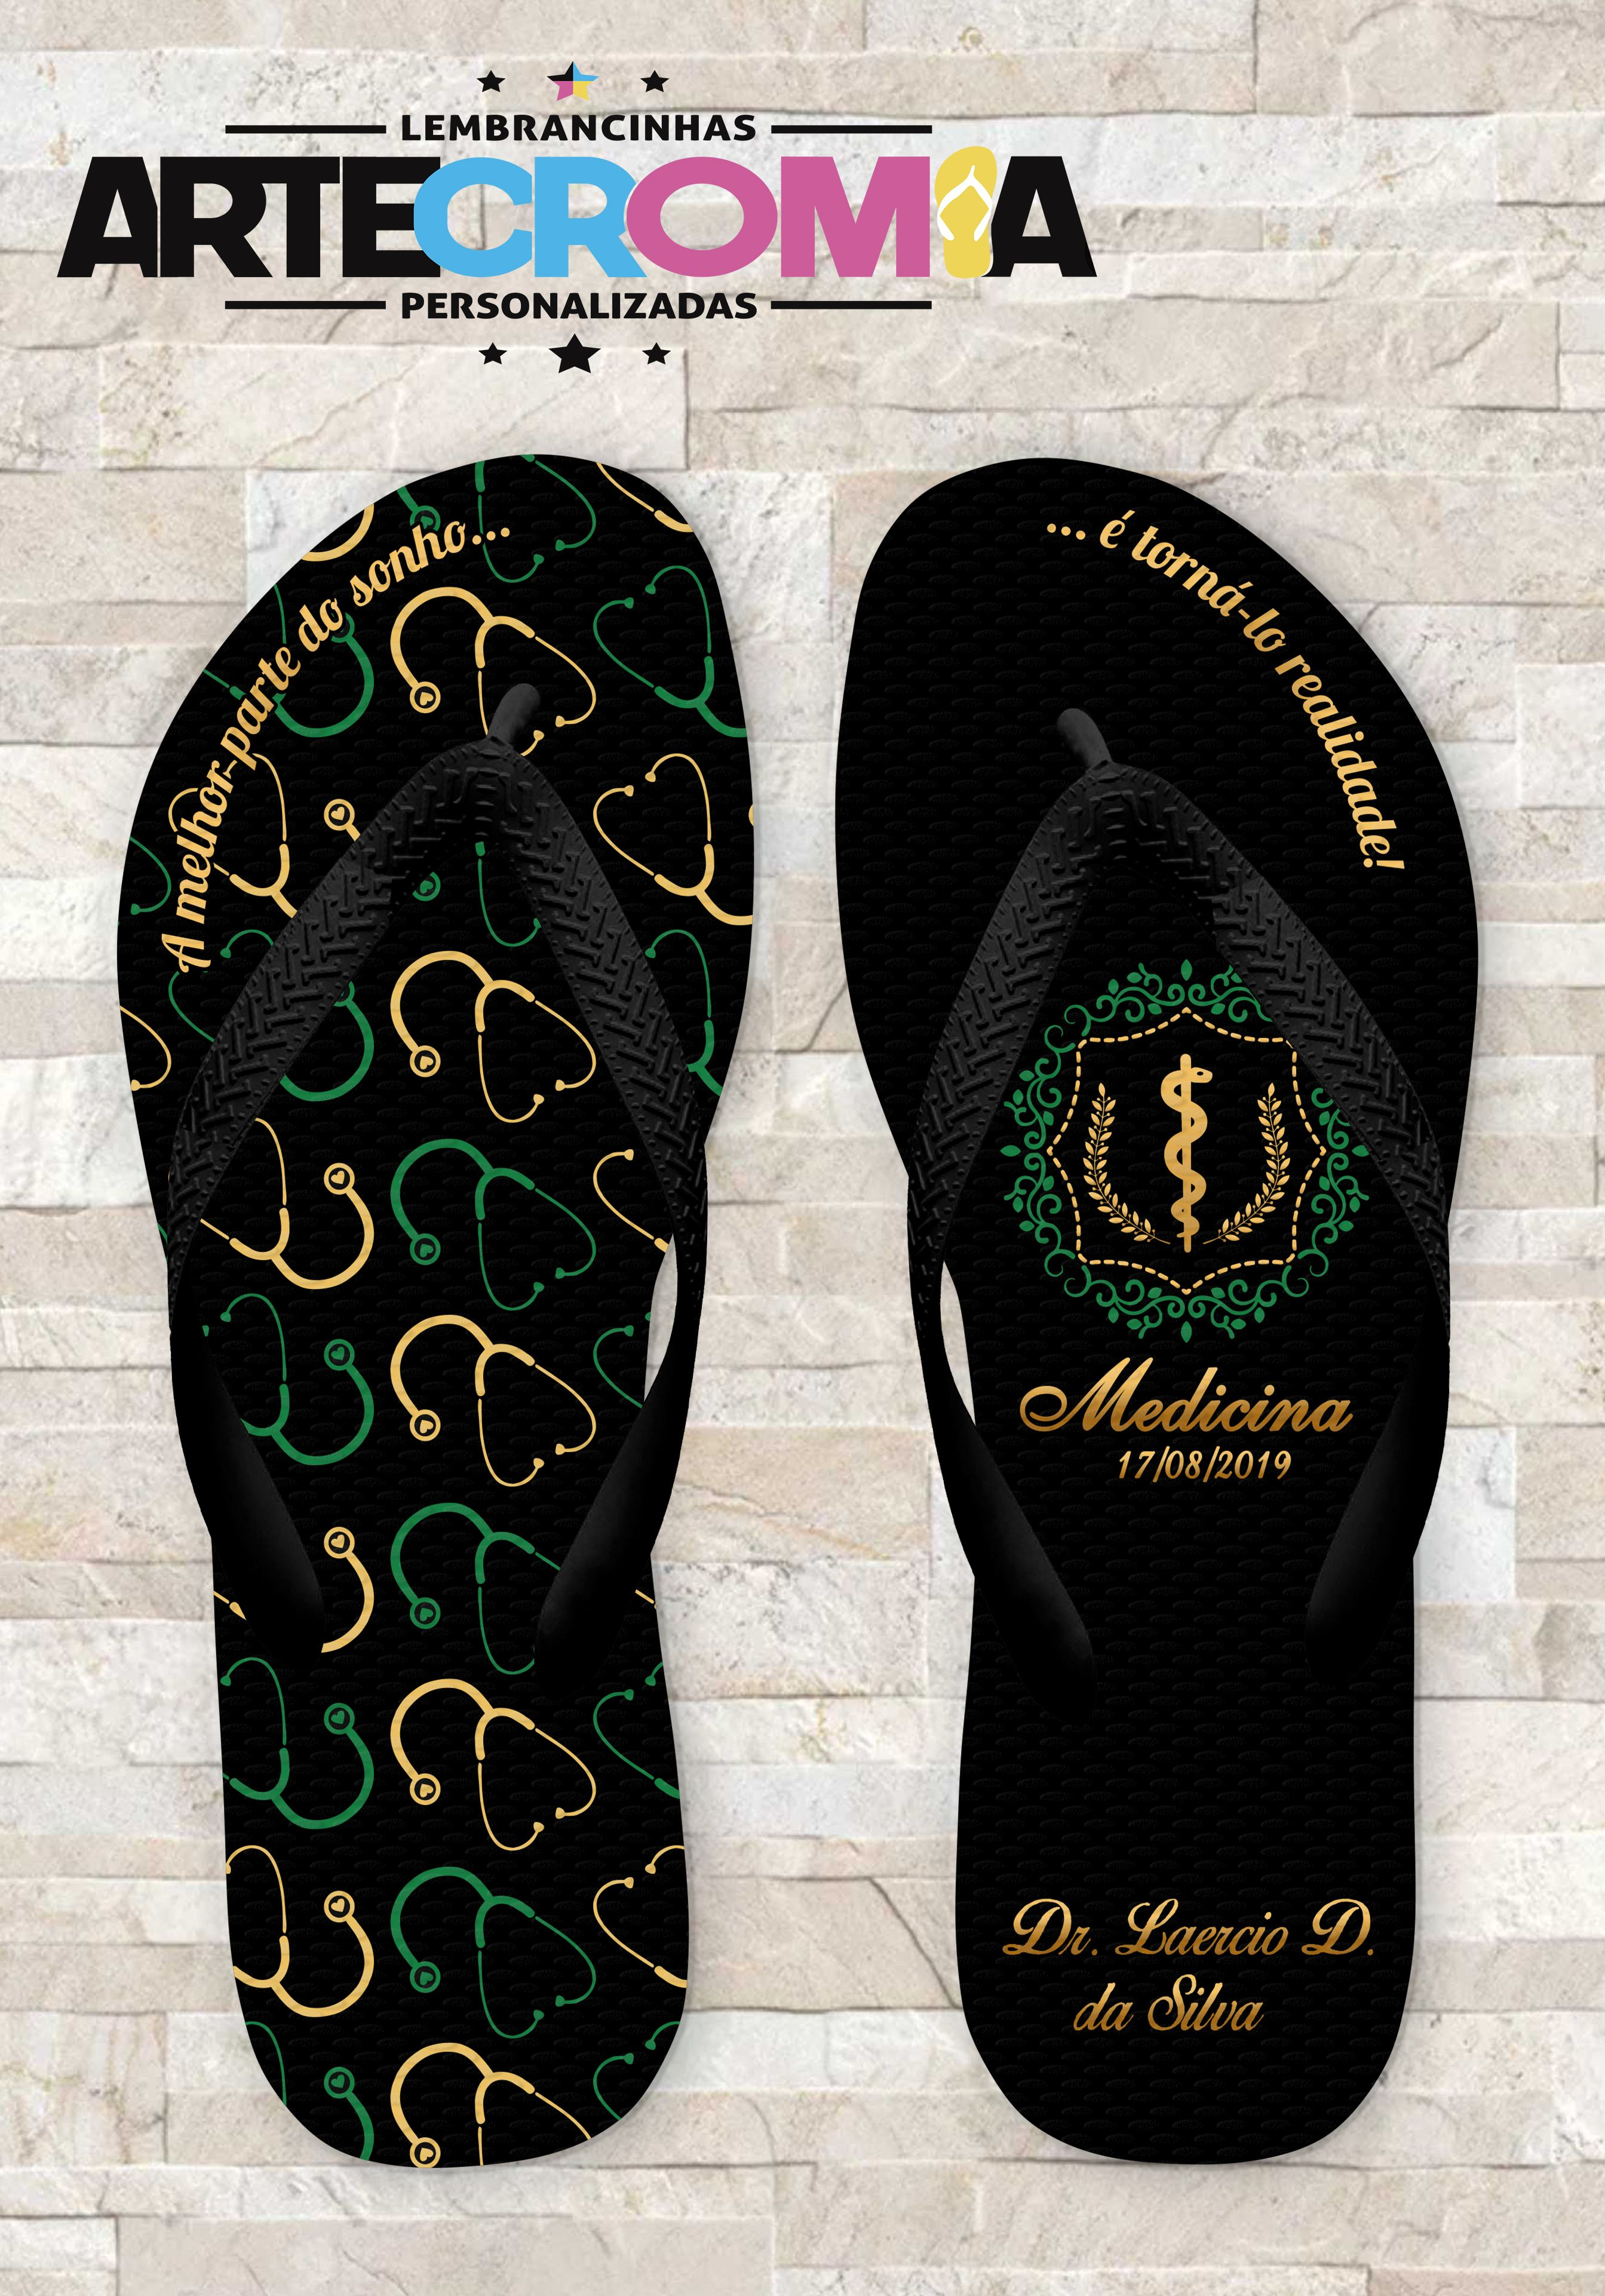 Put Any Dogs face On Sandal Upload Face Dog And Name On Sandal Flip Flops Personalized Flip Flops Vacation Beach gift Custom Flip Flops